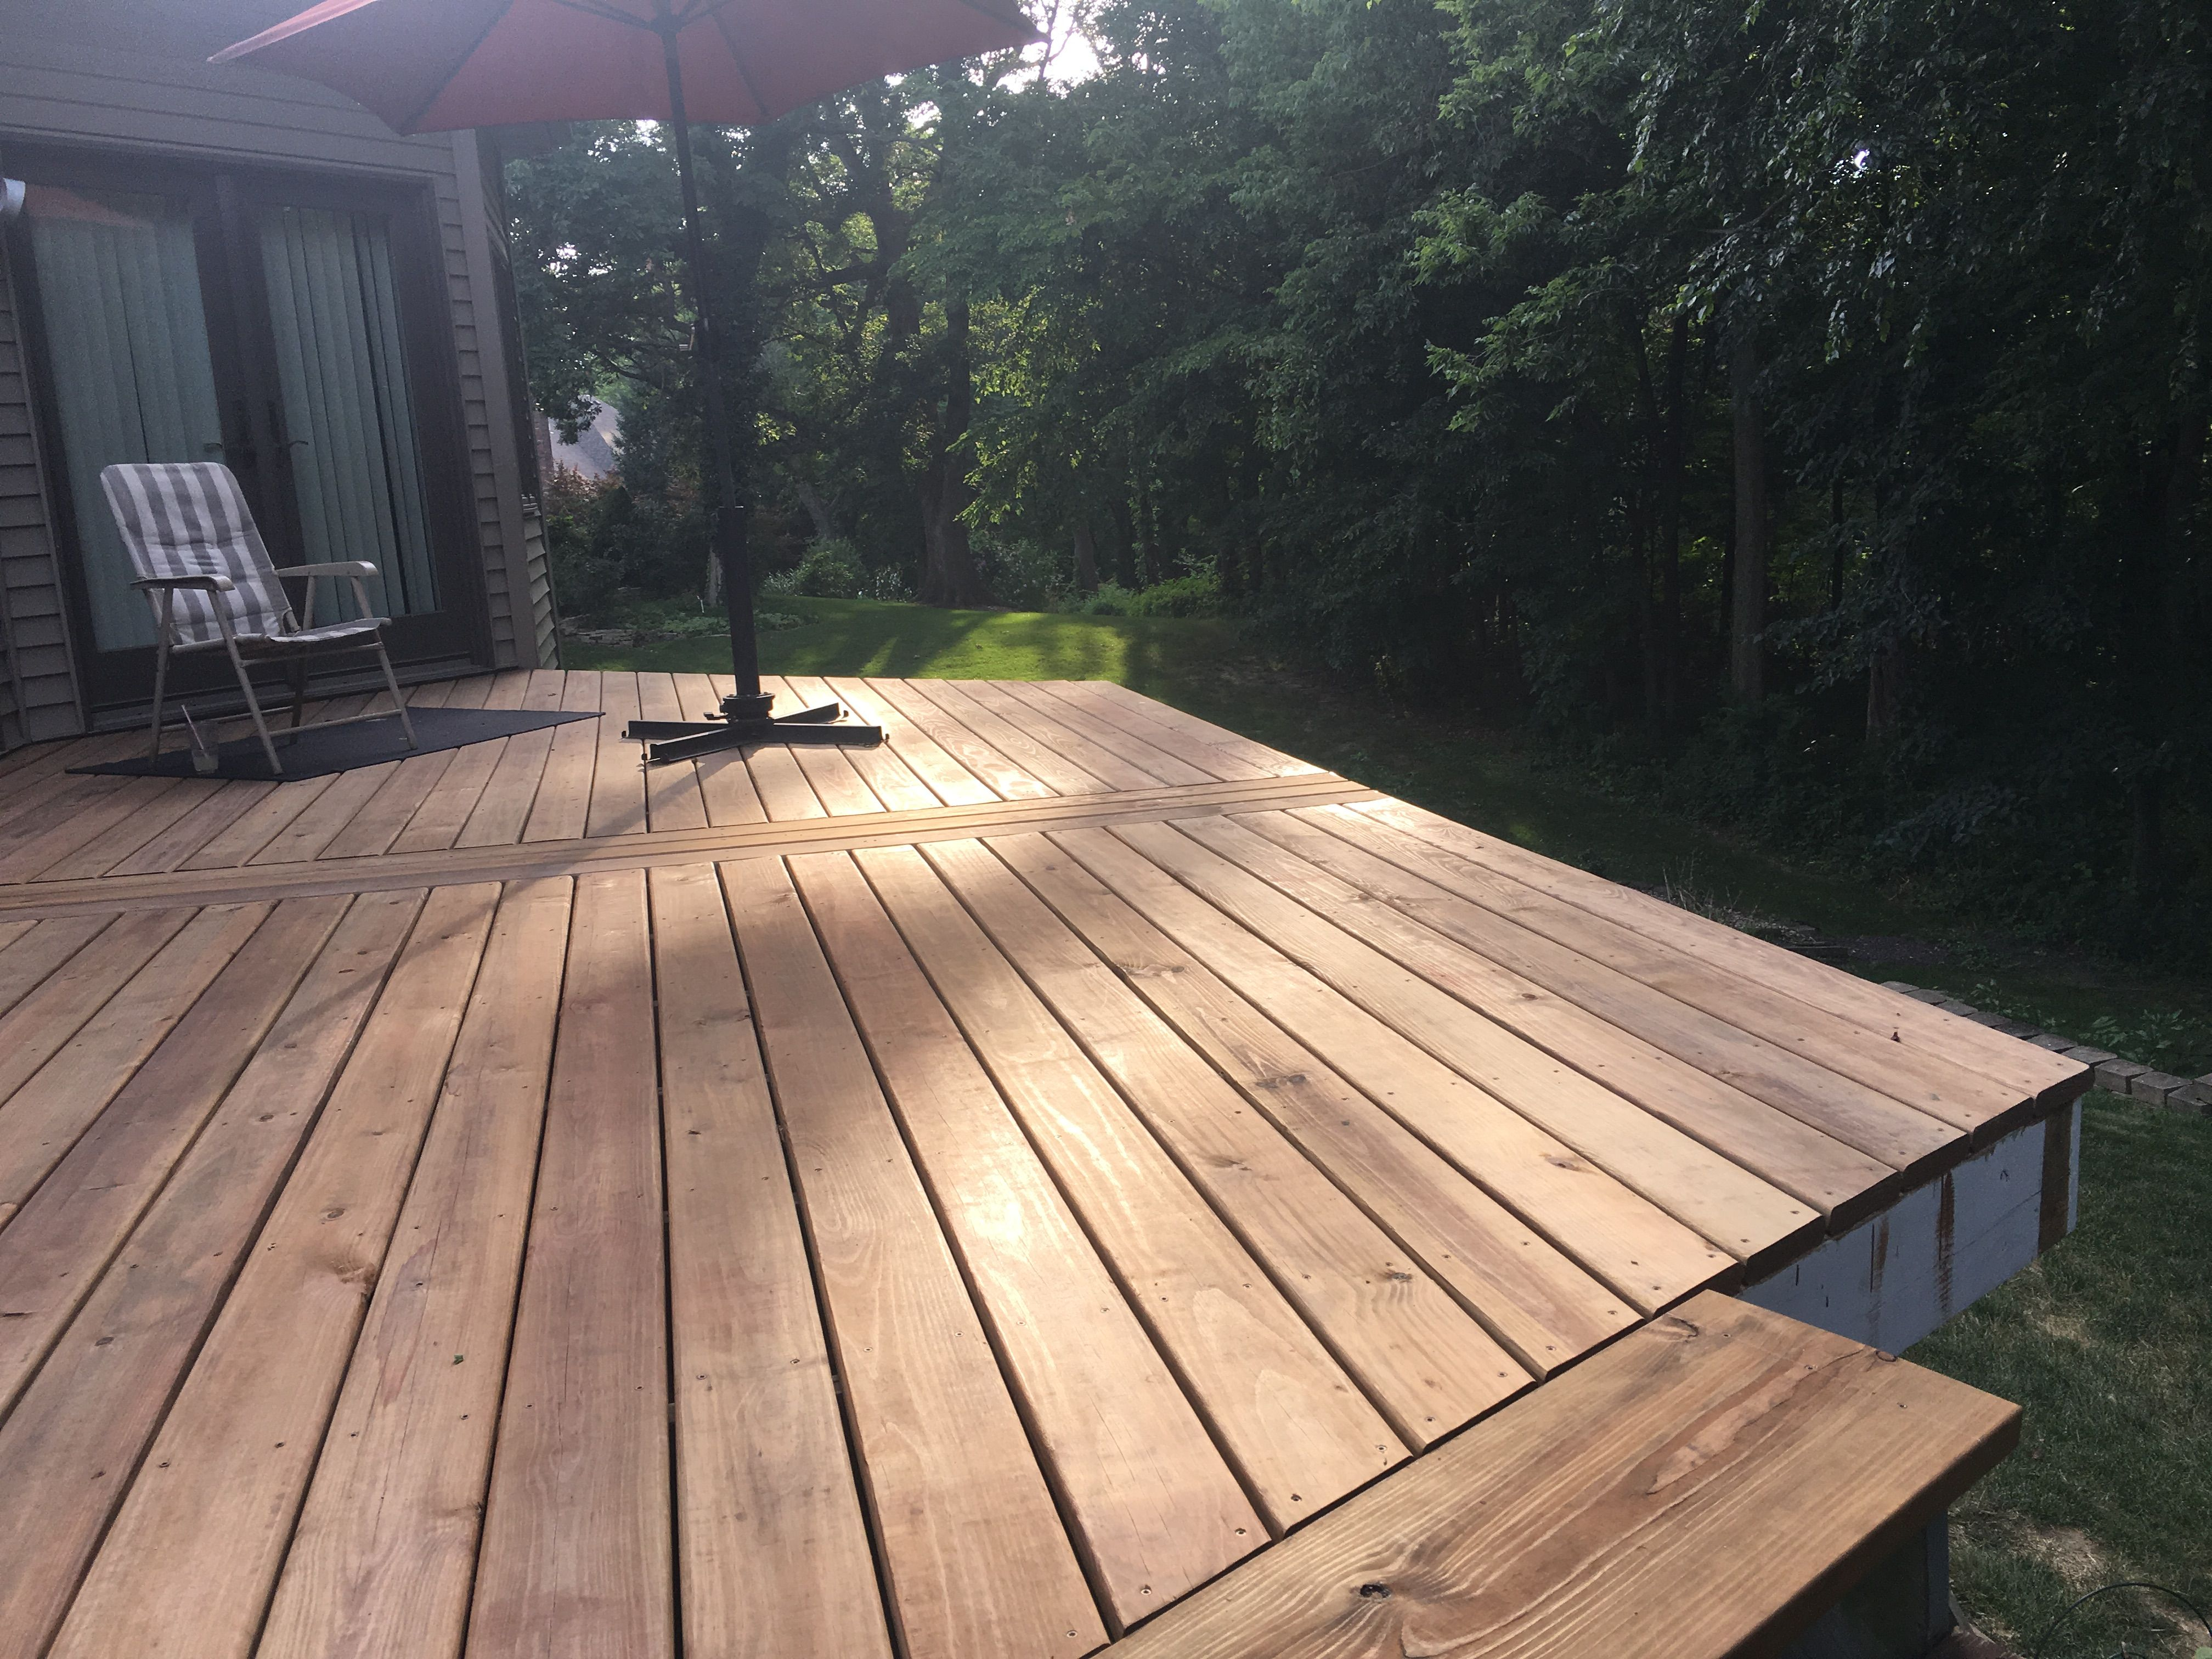 Diy Deck Renovation Completed Deck Board Installation June 2017 Ac2 Cedartone Deck Boards From Menards Deck Is 26 5 X 12 5 Deck Renovation Diy Deck Deck